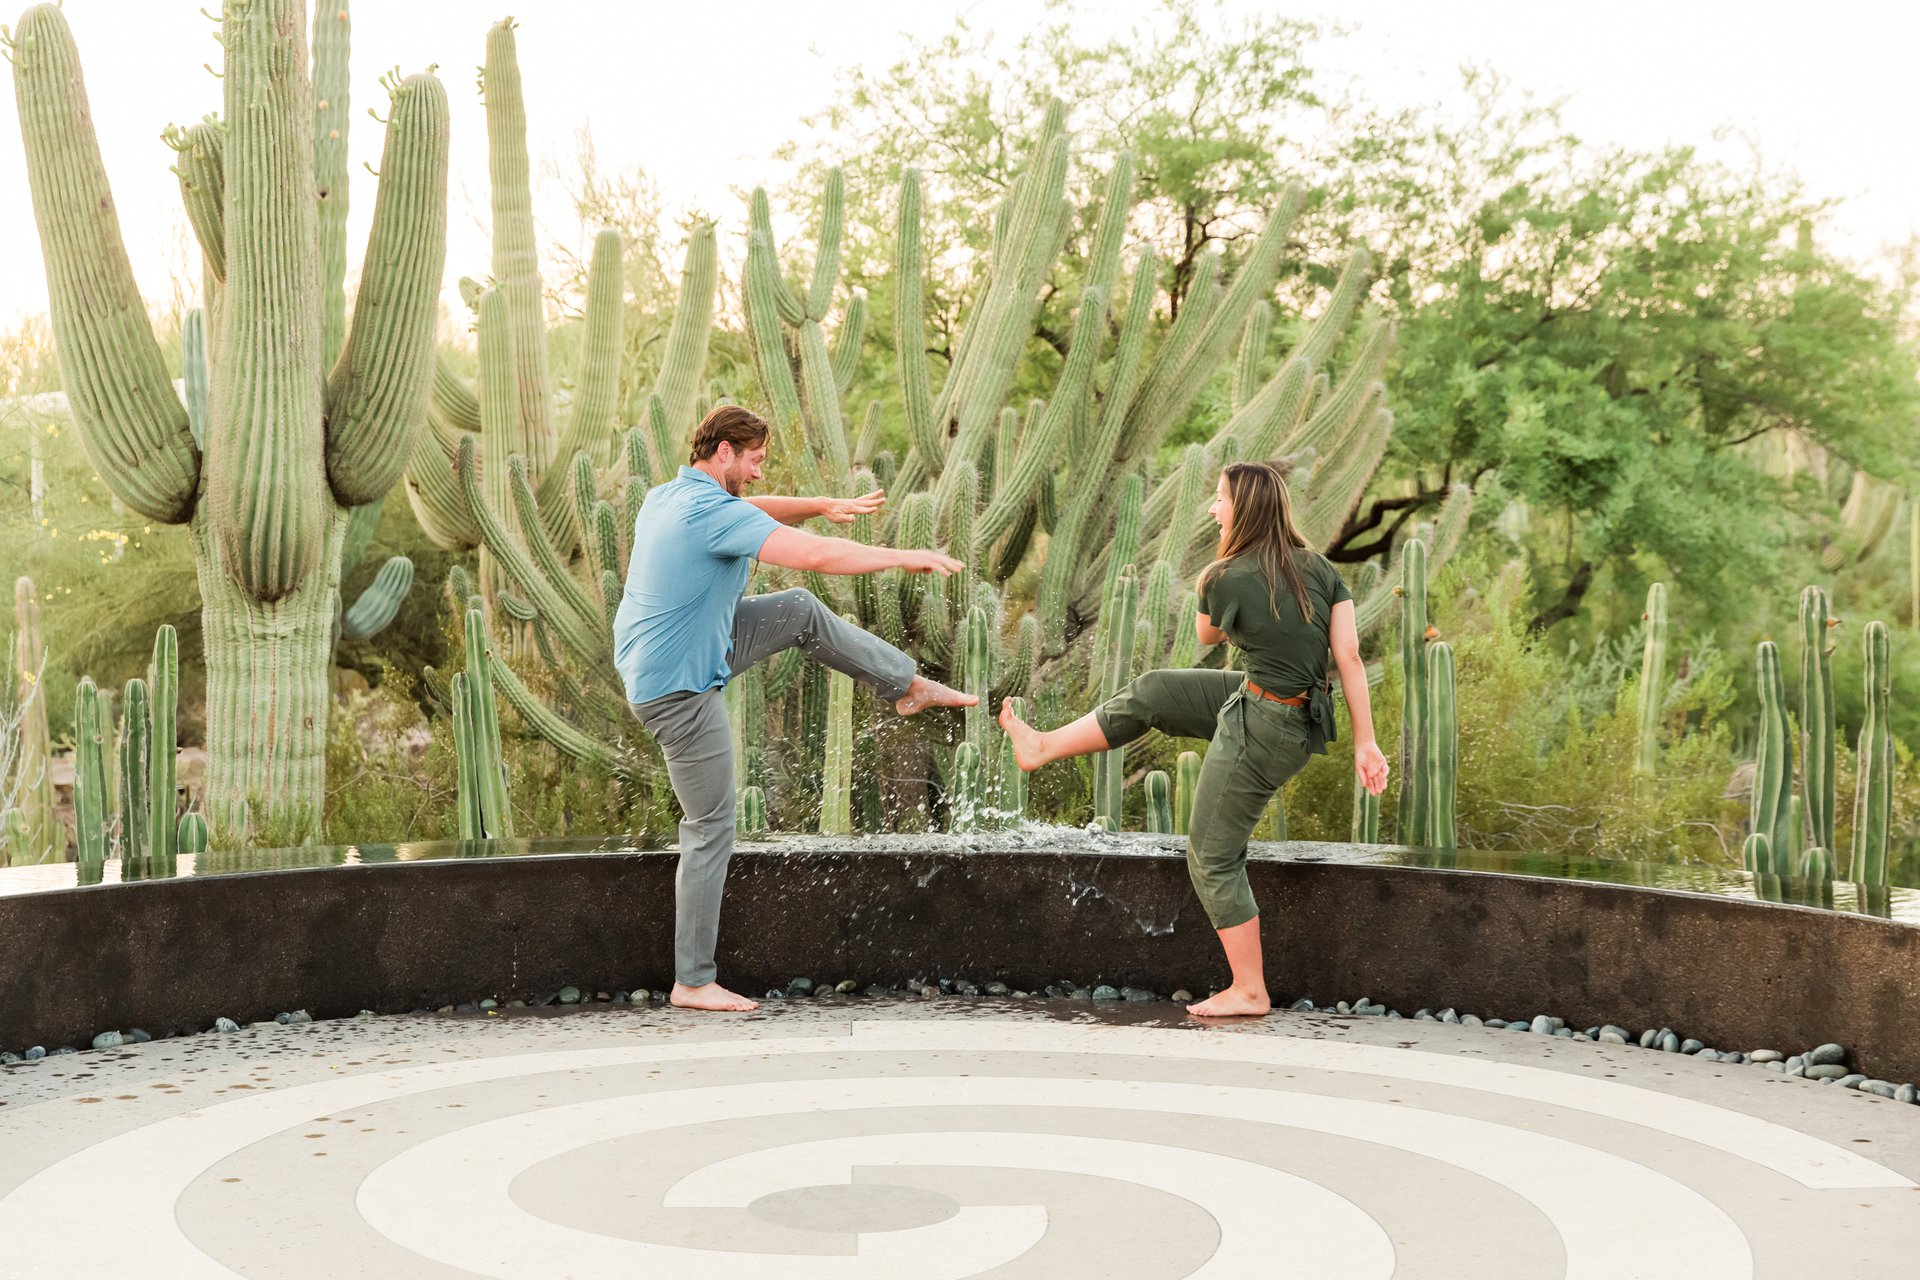 Scottsdale-United States-travel-story-Flytographer-15